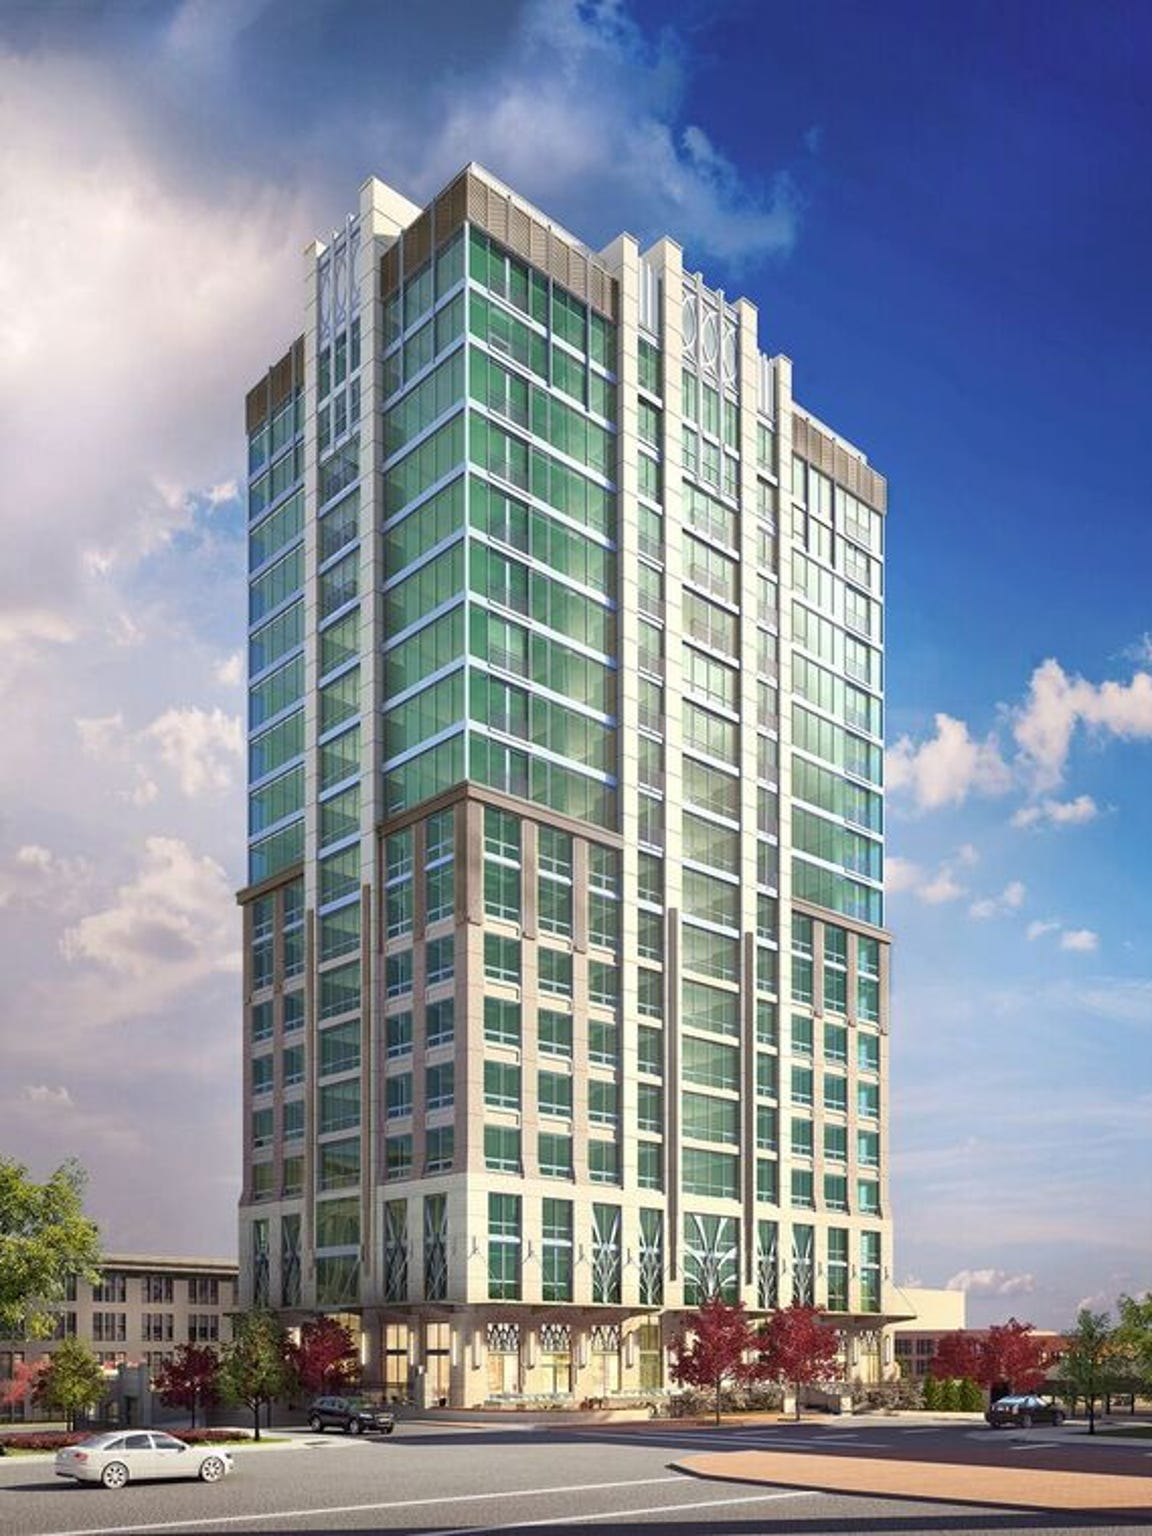 This rendering shows what The Arras hotel/condominium